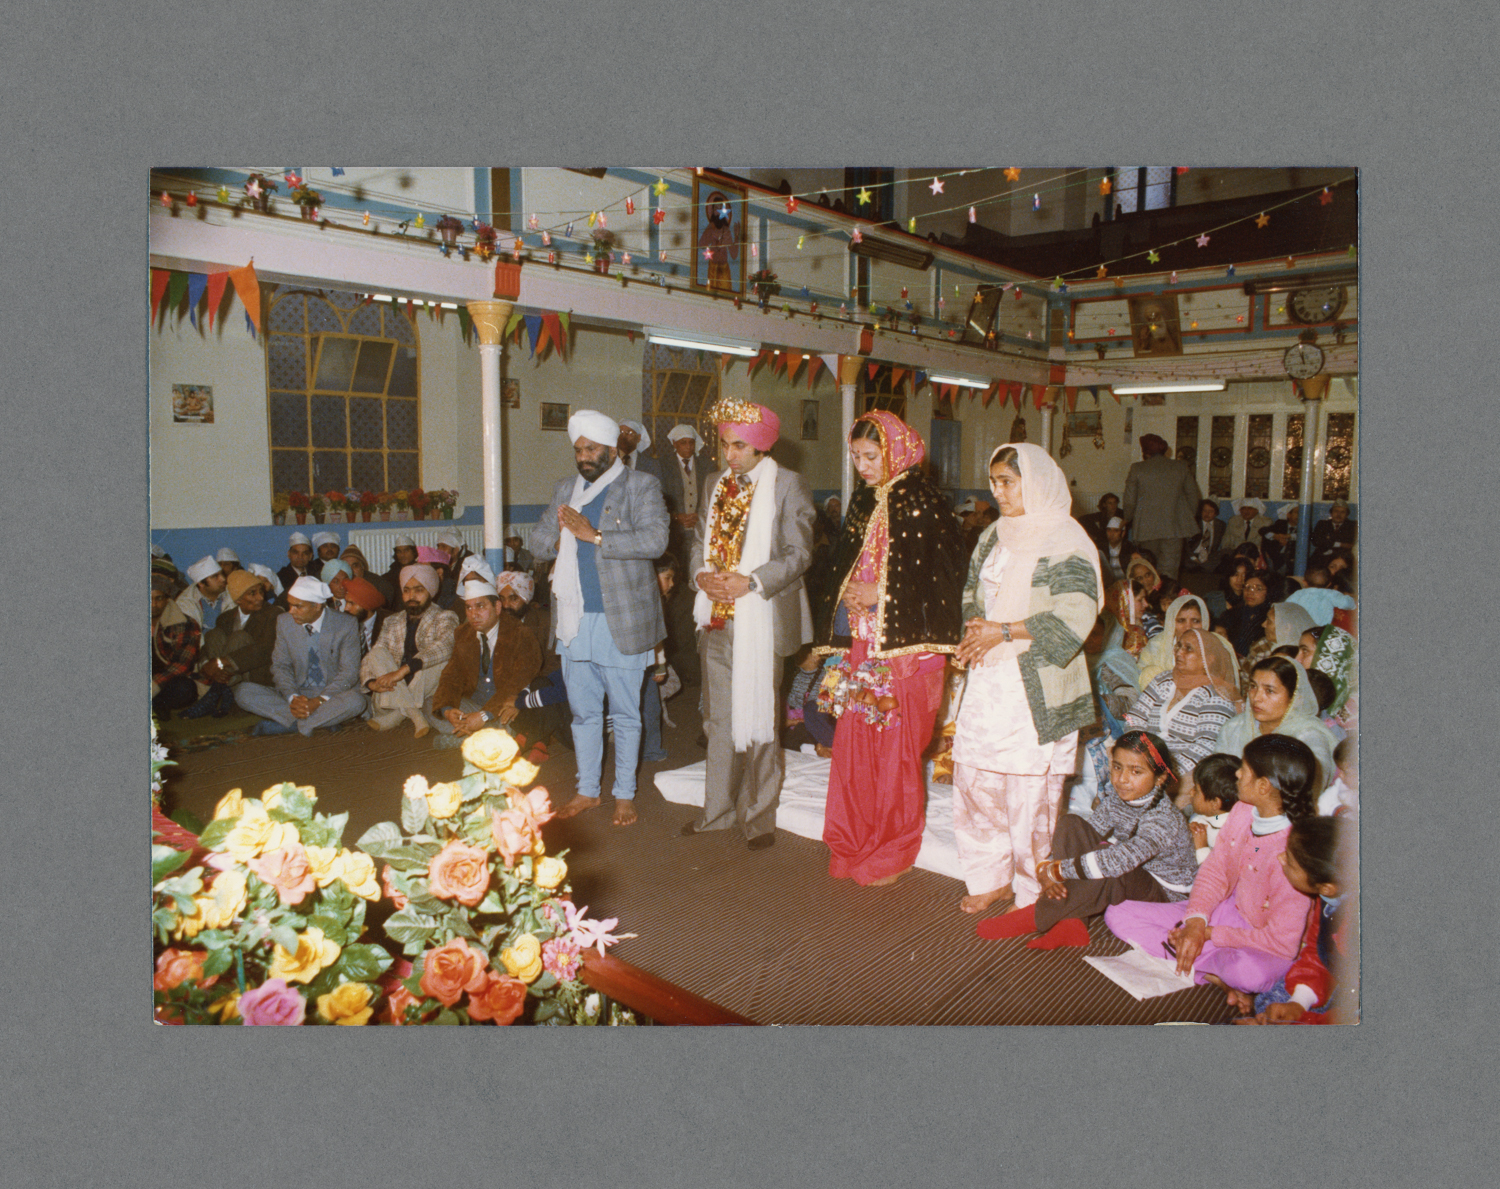 Gurdwara, Grove Lane, B'ham c.1979